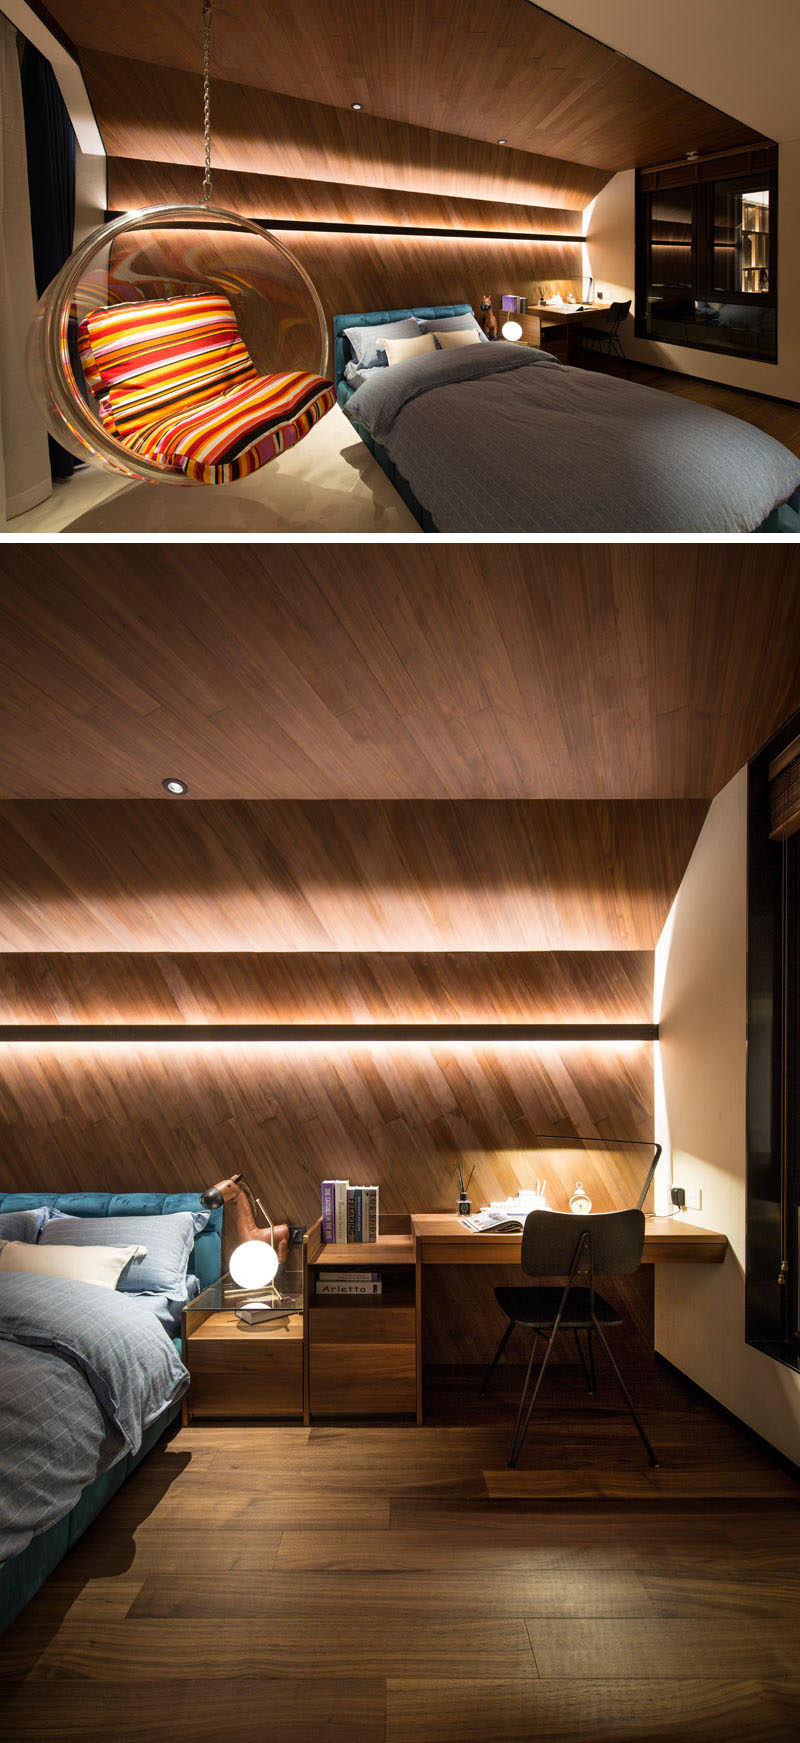 Design Detail This Childrens Bedroom Features A Wrap Around Wood Accent Wall With Hidden Lighting